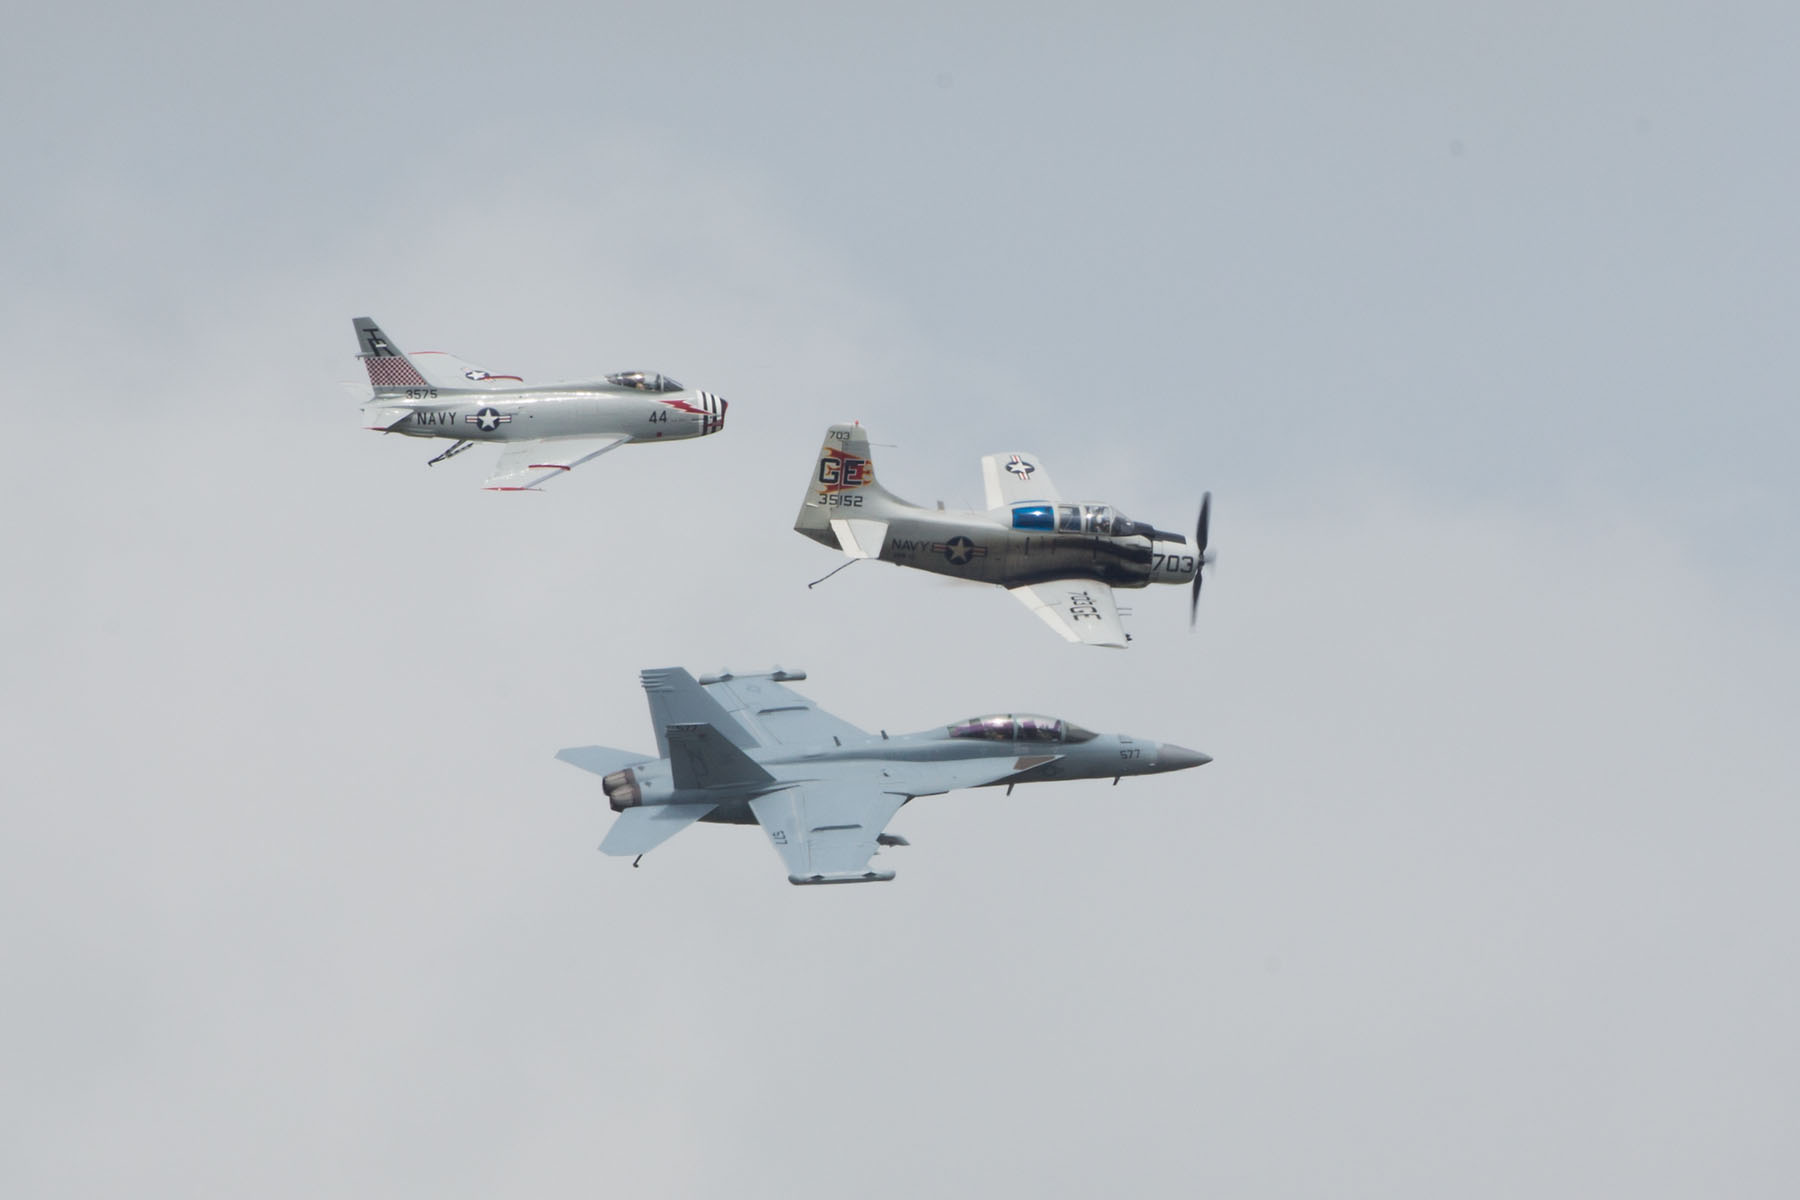 Heritage flight, Sioux Falls Air Show, August 2019.  The flight featured Navy planes (from top) FJ-4B Fury, AD-4 Skyraider, and F/A-18 Hornet.  Click for next photo.